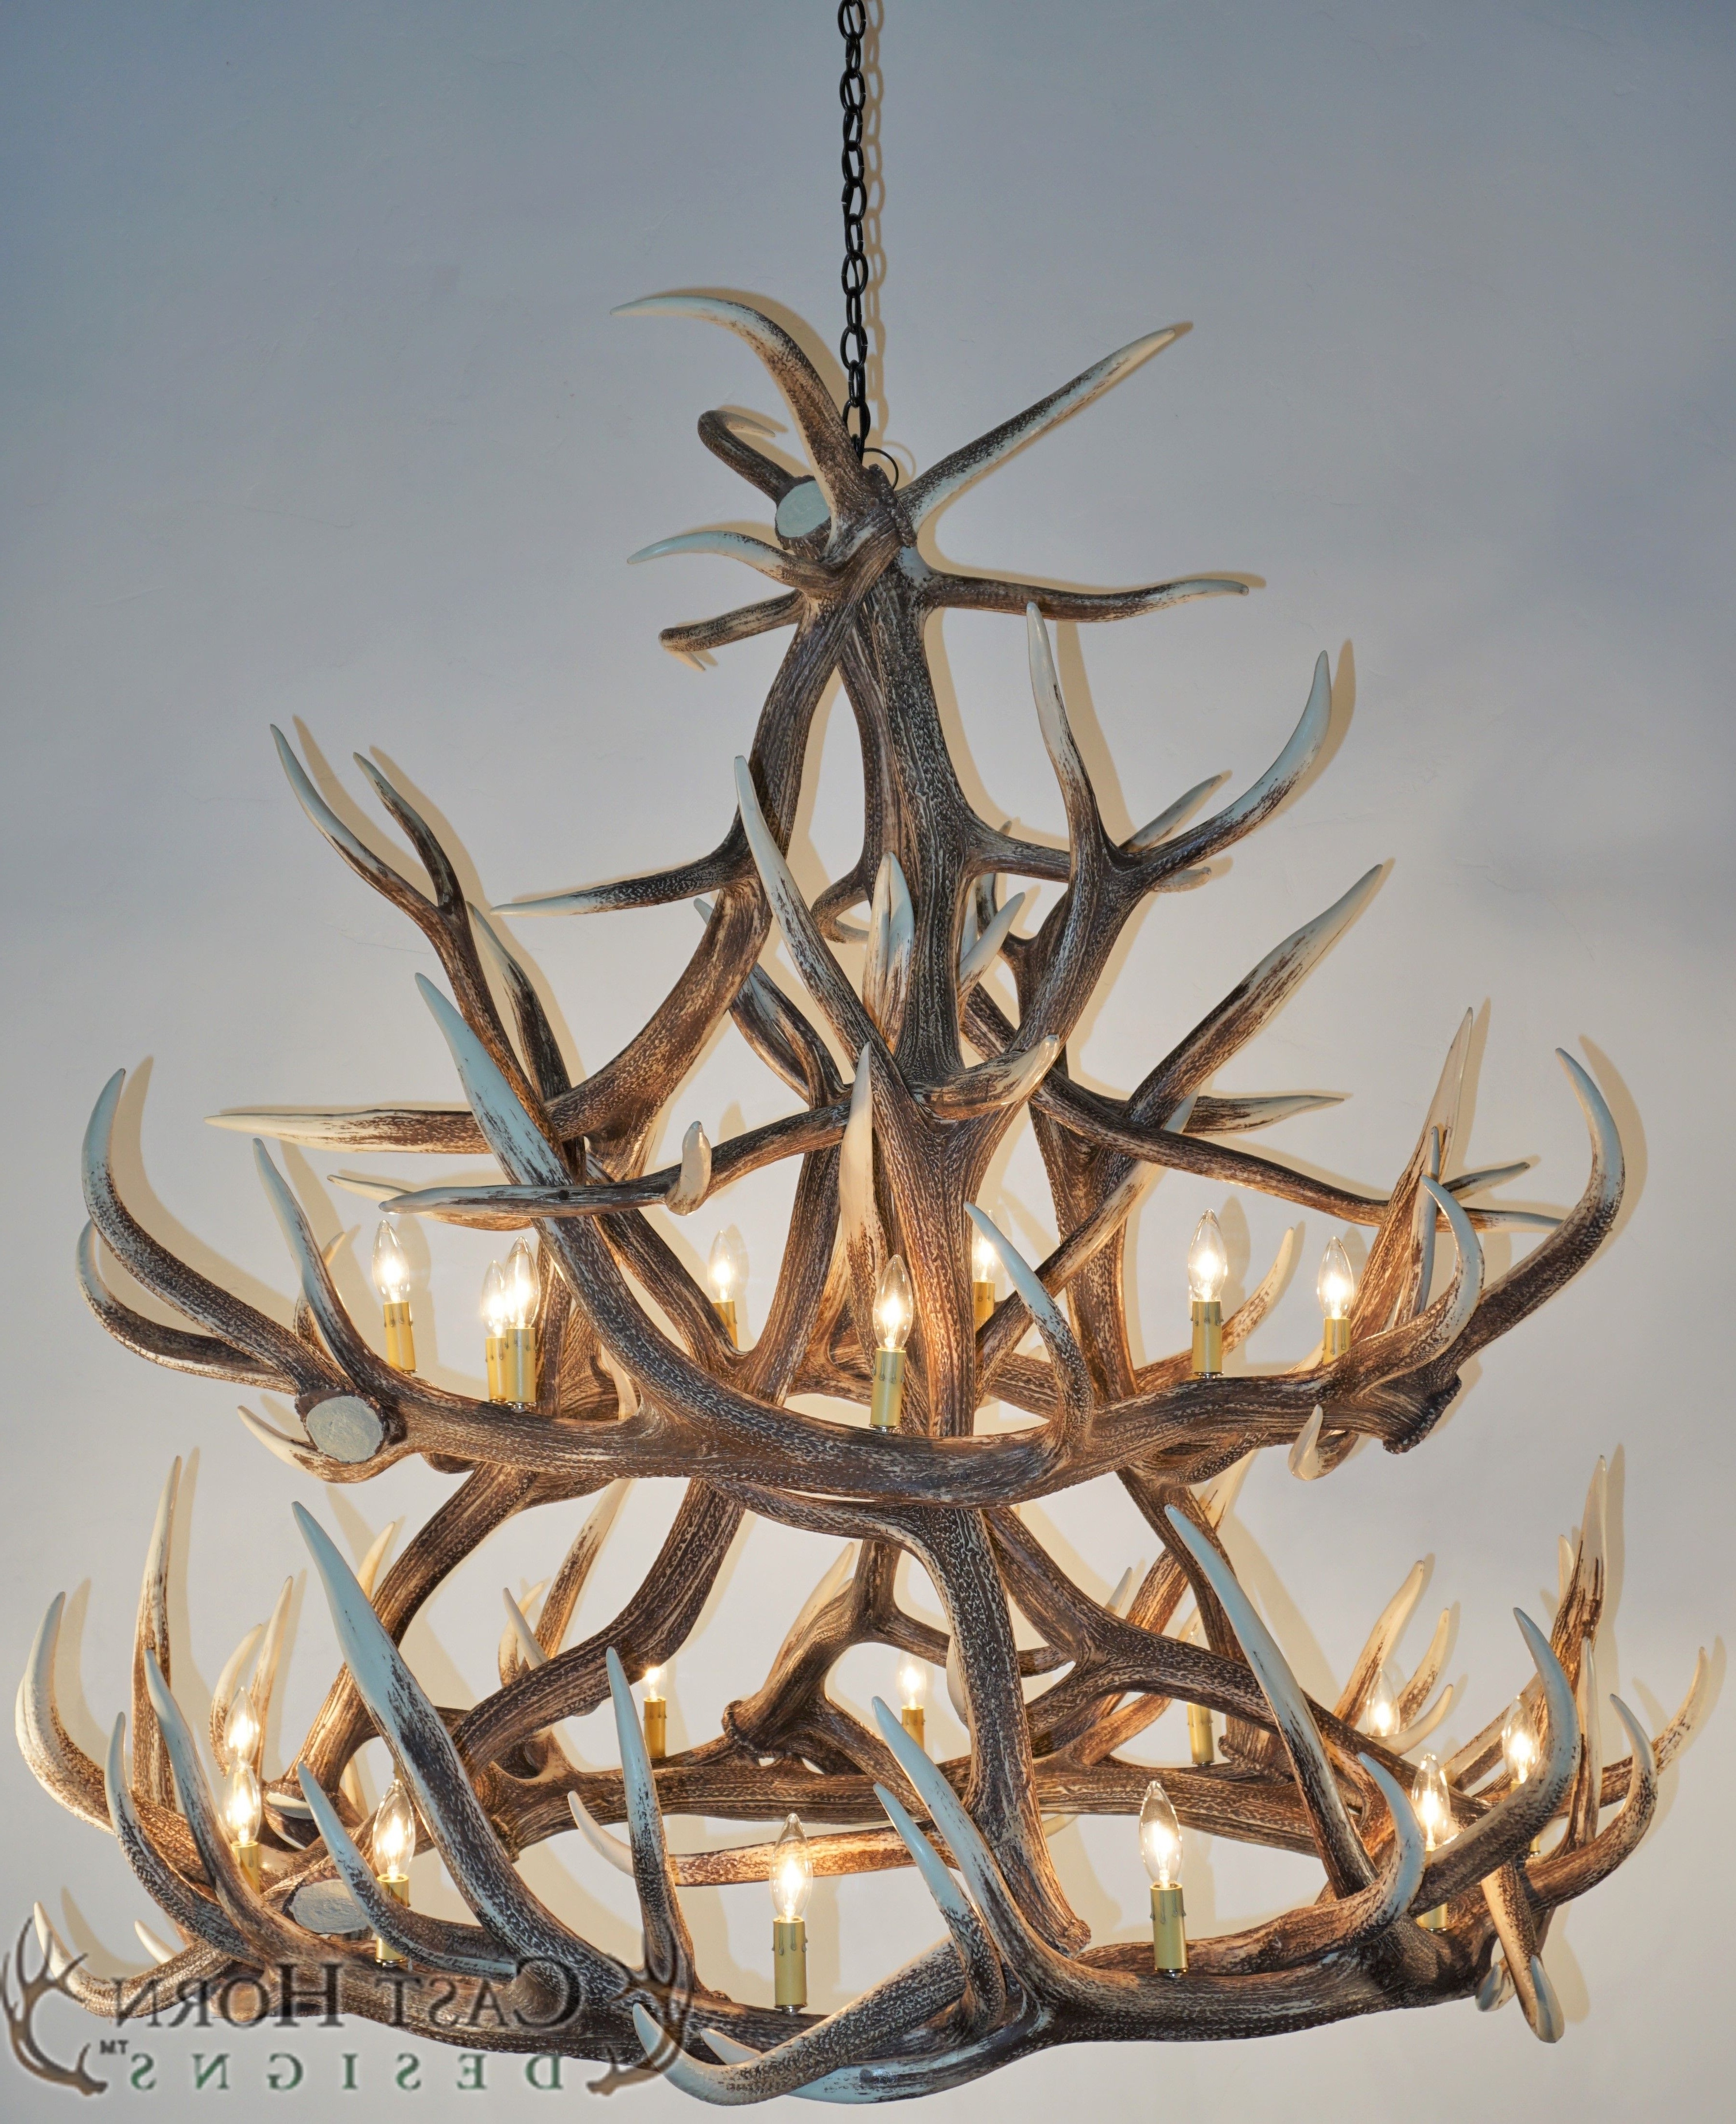 Preferred Chandeliers : White Antler Chandelier Inspirational Lighting Elk With Regard To White Antler Chandelier (View 9 of 20)